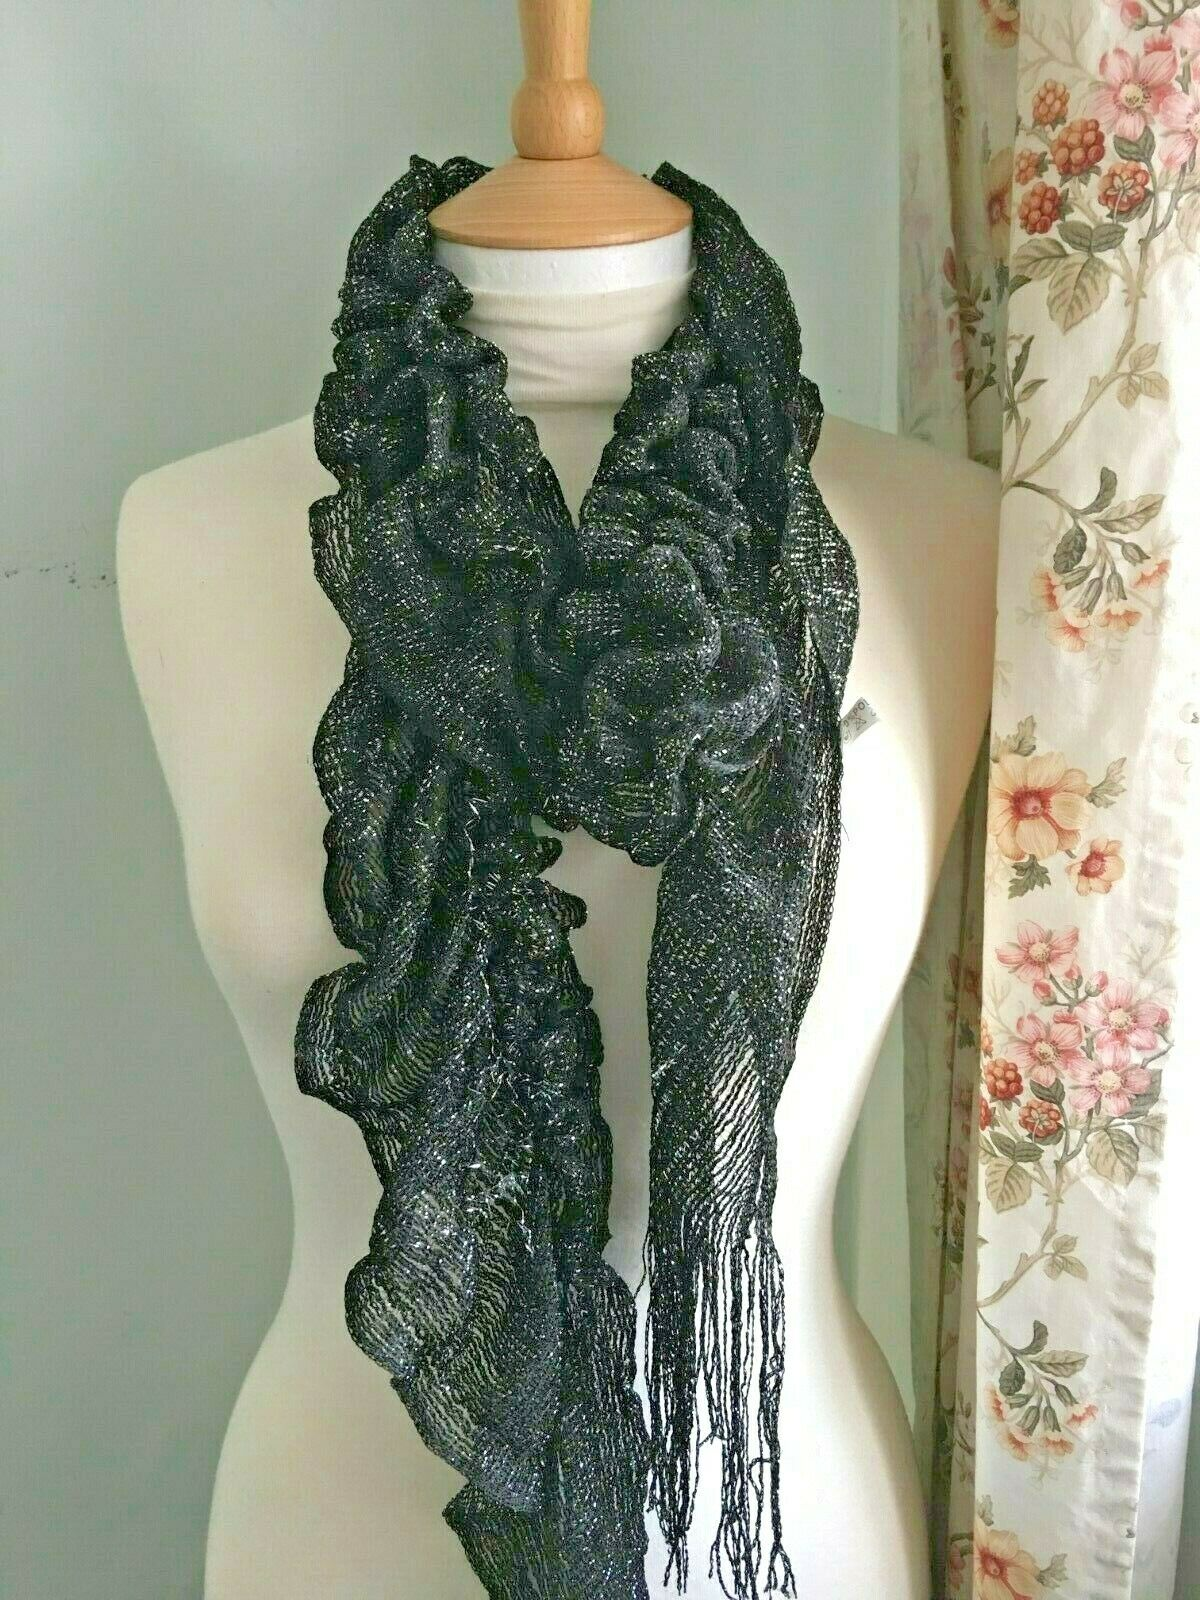 Girls/Women's Long black and silver shimmery lacy curly wurly fashion scarf